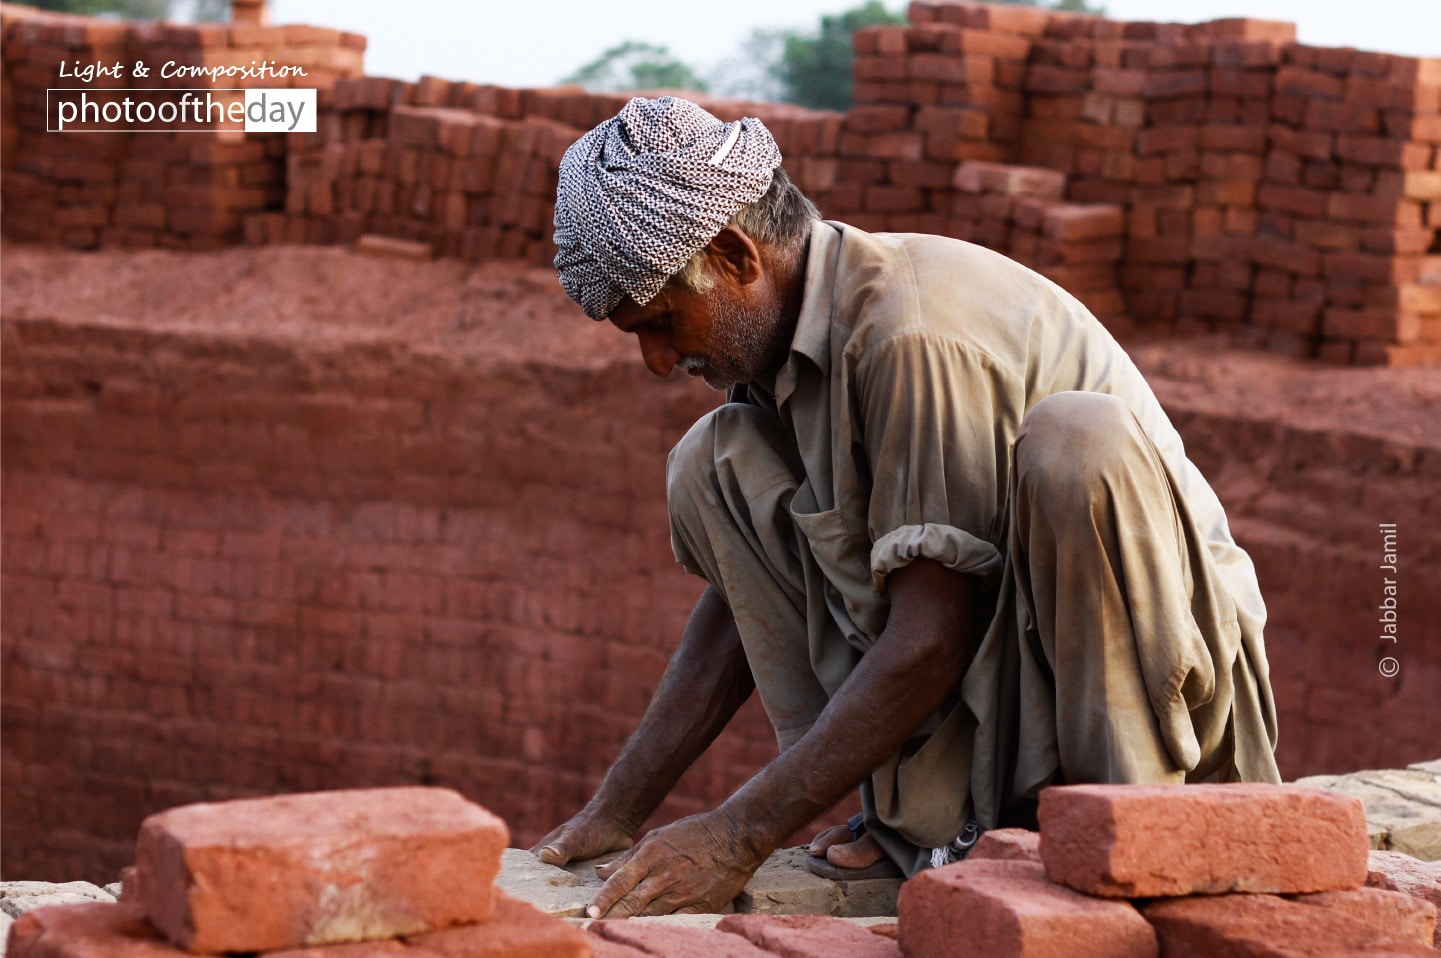 A Worker at Brick Kiln, by Jabbar Jamil